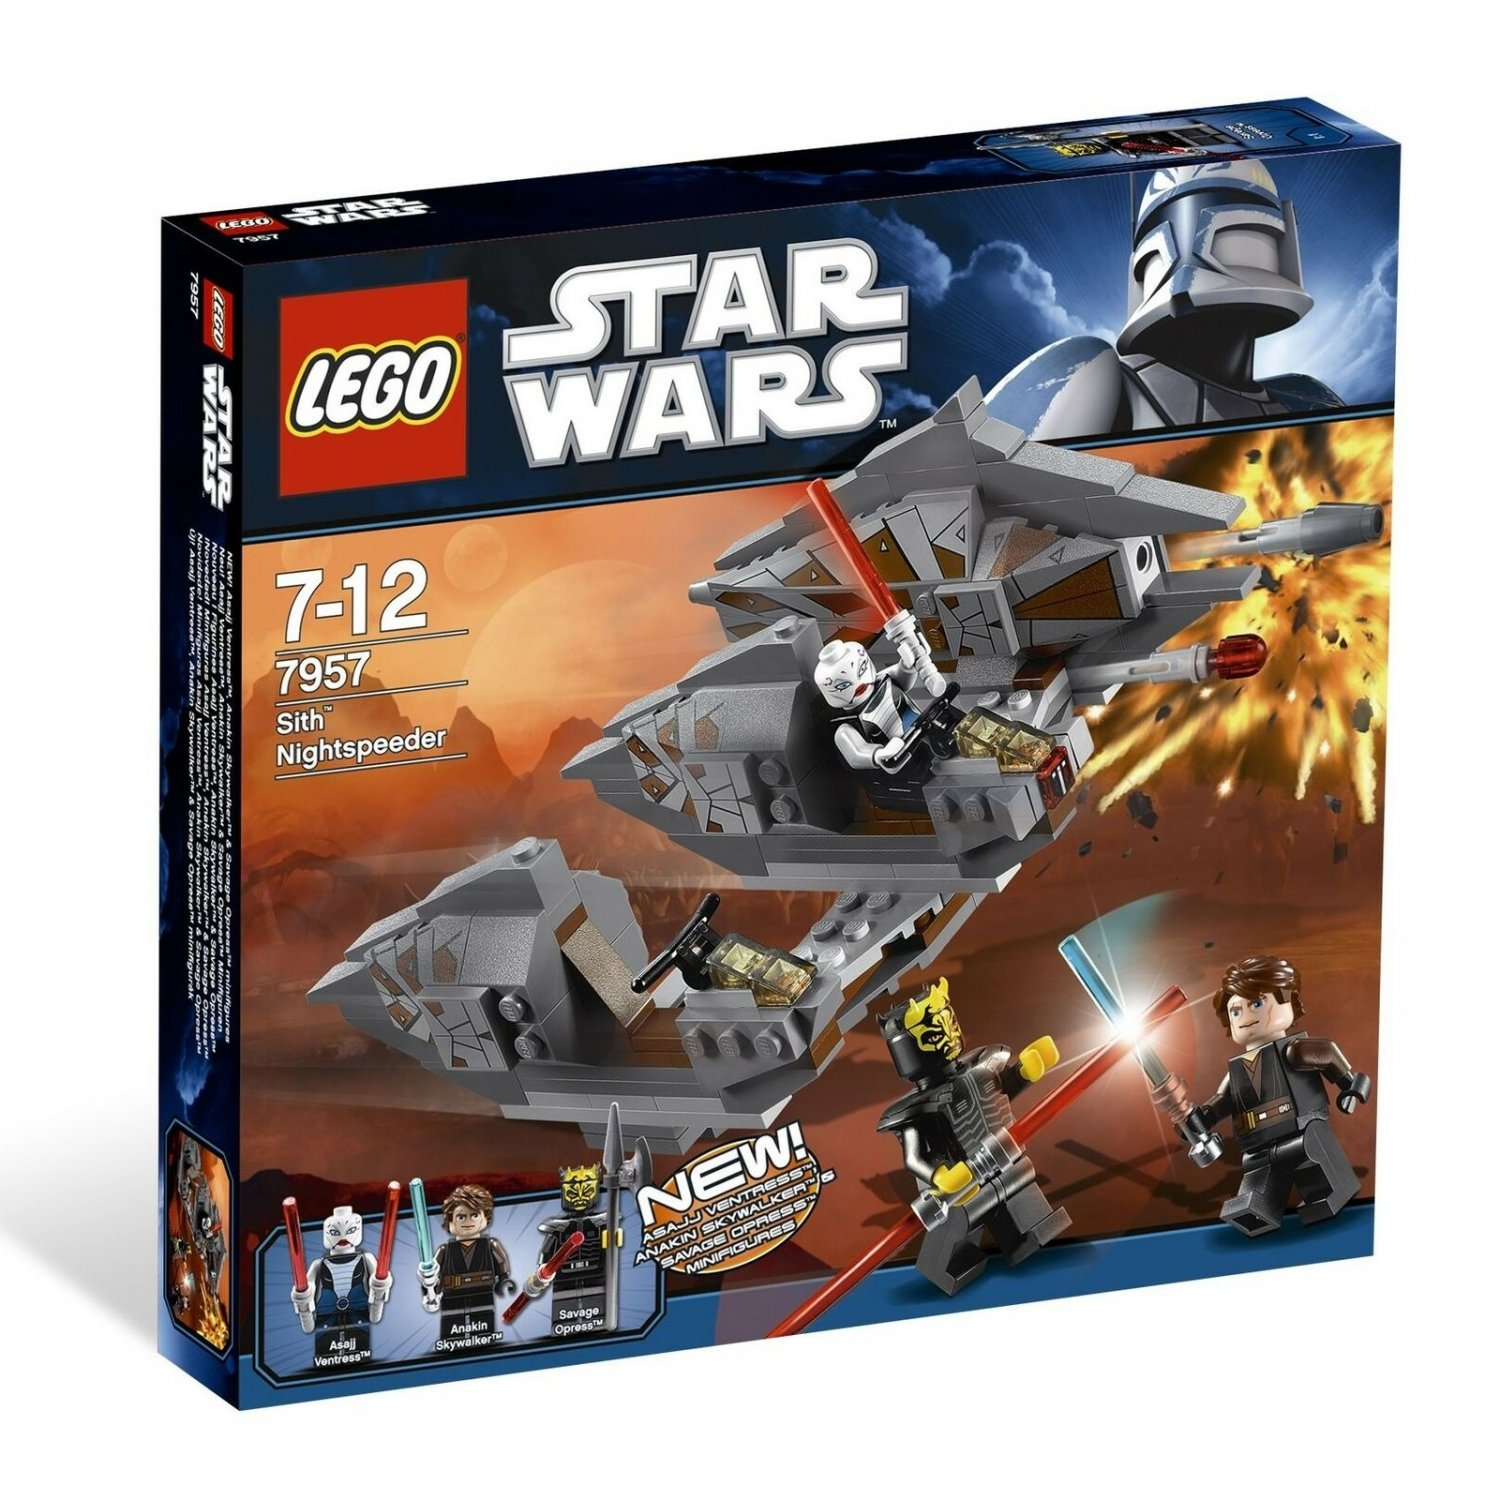 7957 Lego Star Wars Sith Nightspeeder